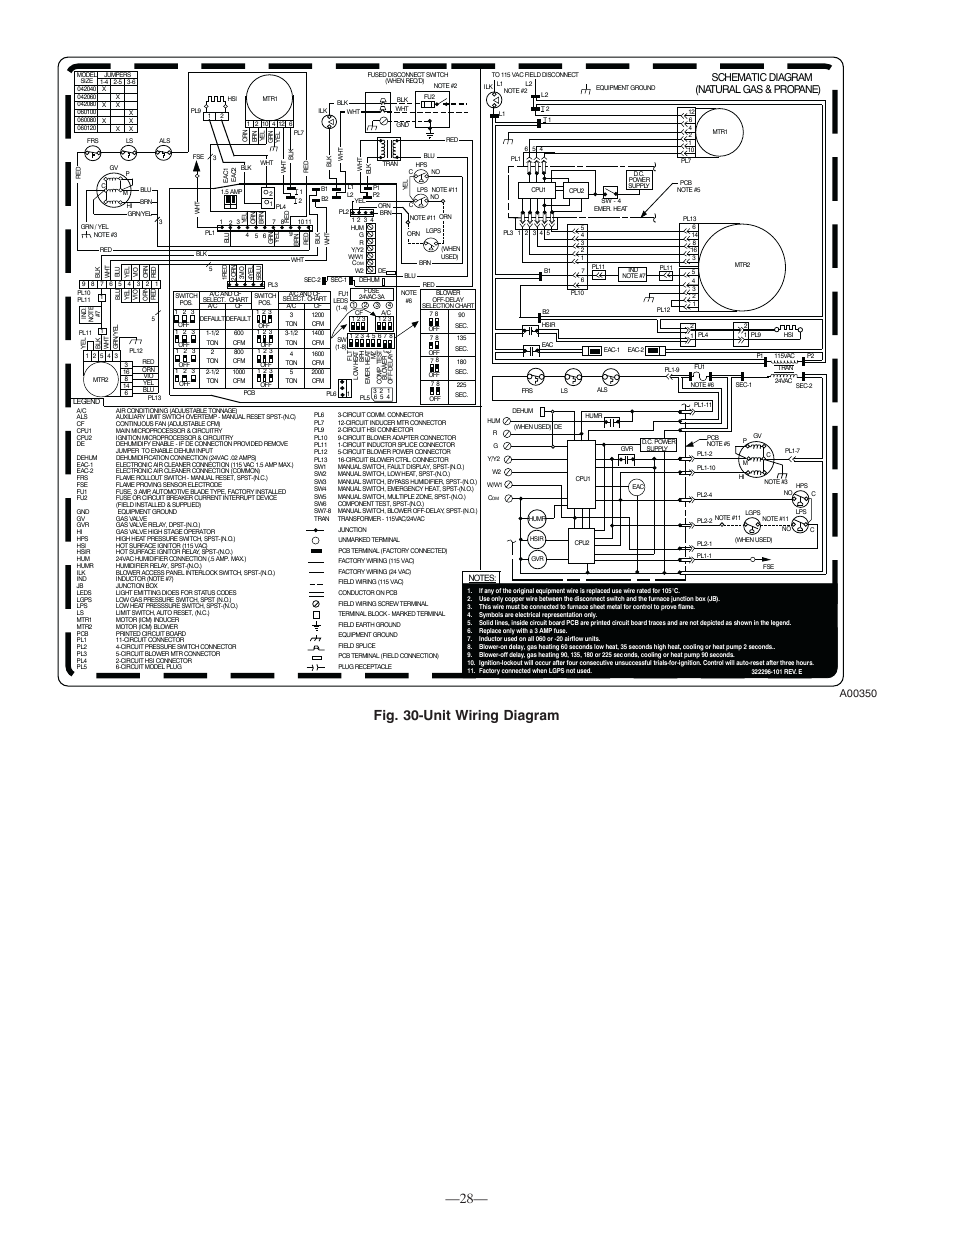 Fig 30 Unit Wiring Diagram 28 Schematic Natural Gas Spst Propane Bryant Deluxe 4 Way Furnase 355mav User Manual Page 60